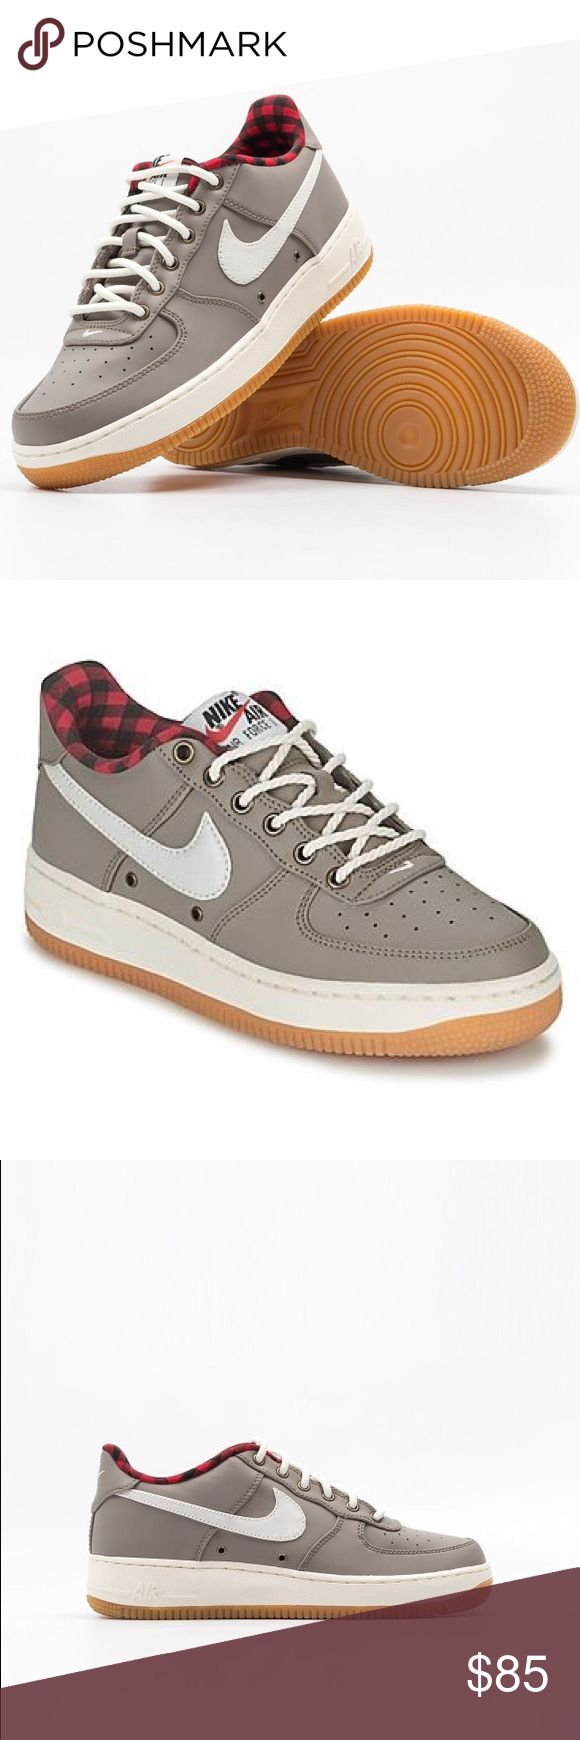 NIKE AIR FORCE 1 LV8 WOMENS SIZE 7.5 SHOES Shoes are a size 6 youth. Which is a women's size 7.5. I posted a sizing chart for your convenience. Brand new without box. 100% authentic Nike Shoes Sneakers